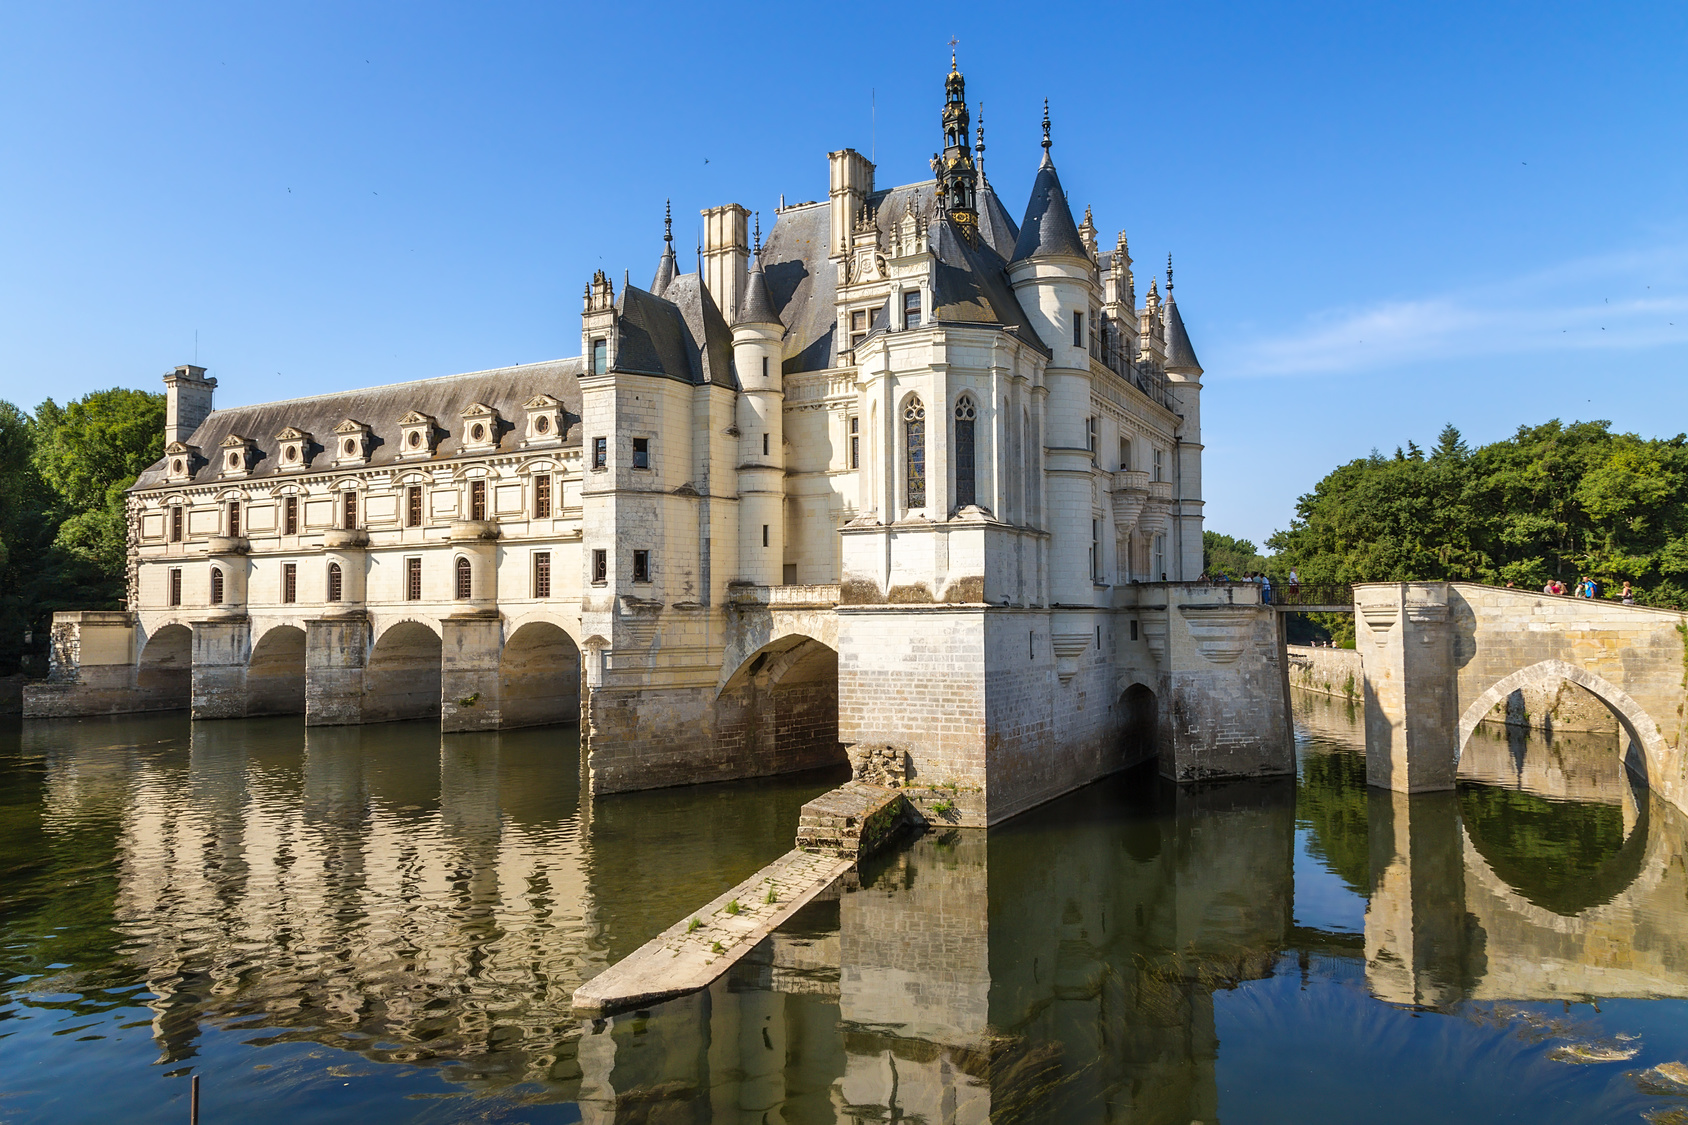 Chenonceau, France. Scenic view of the castle